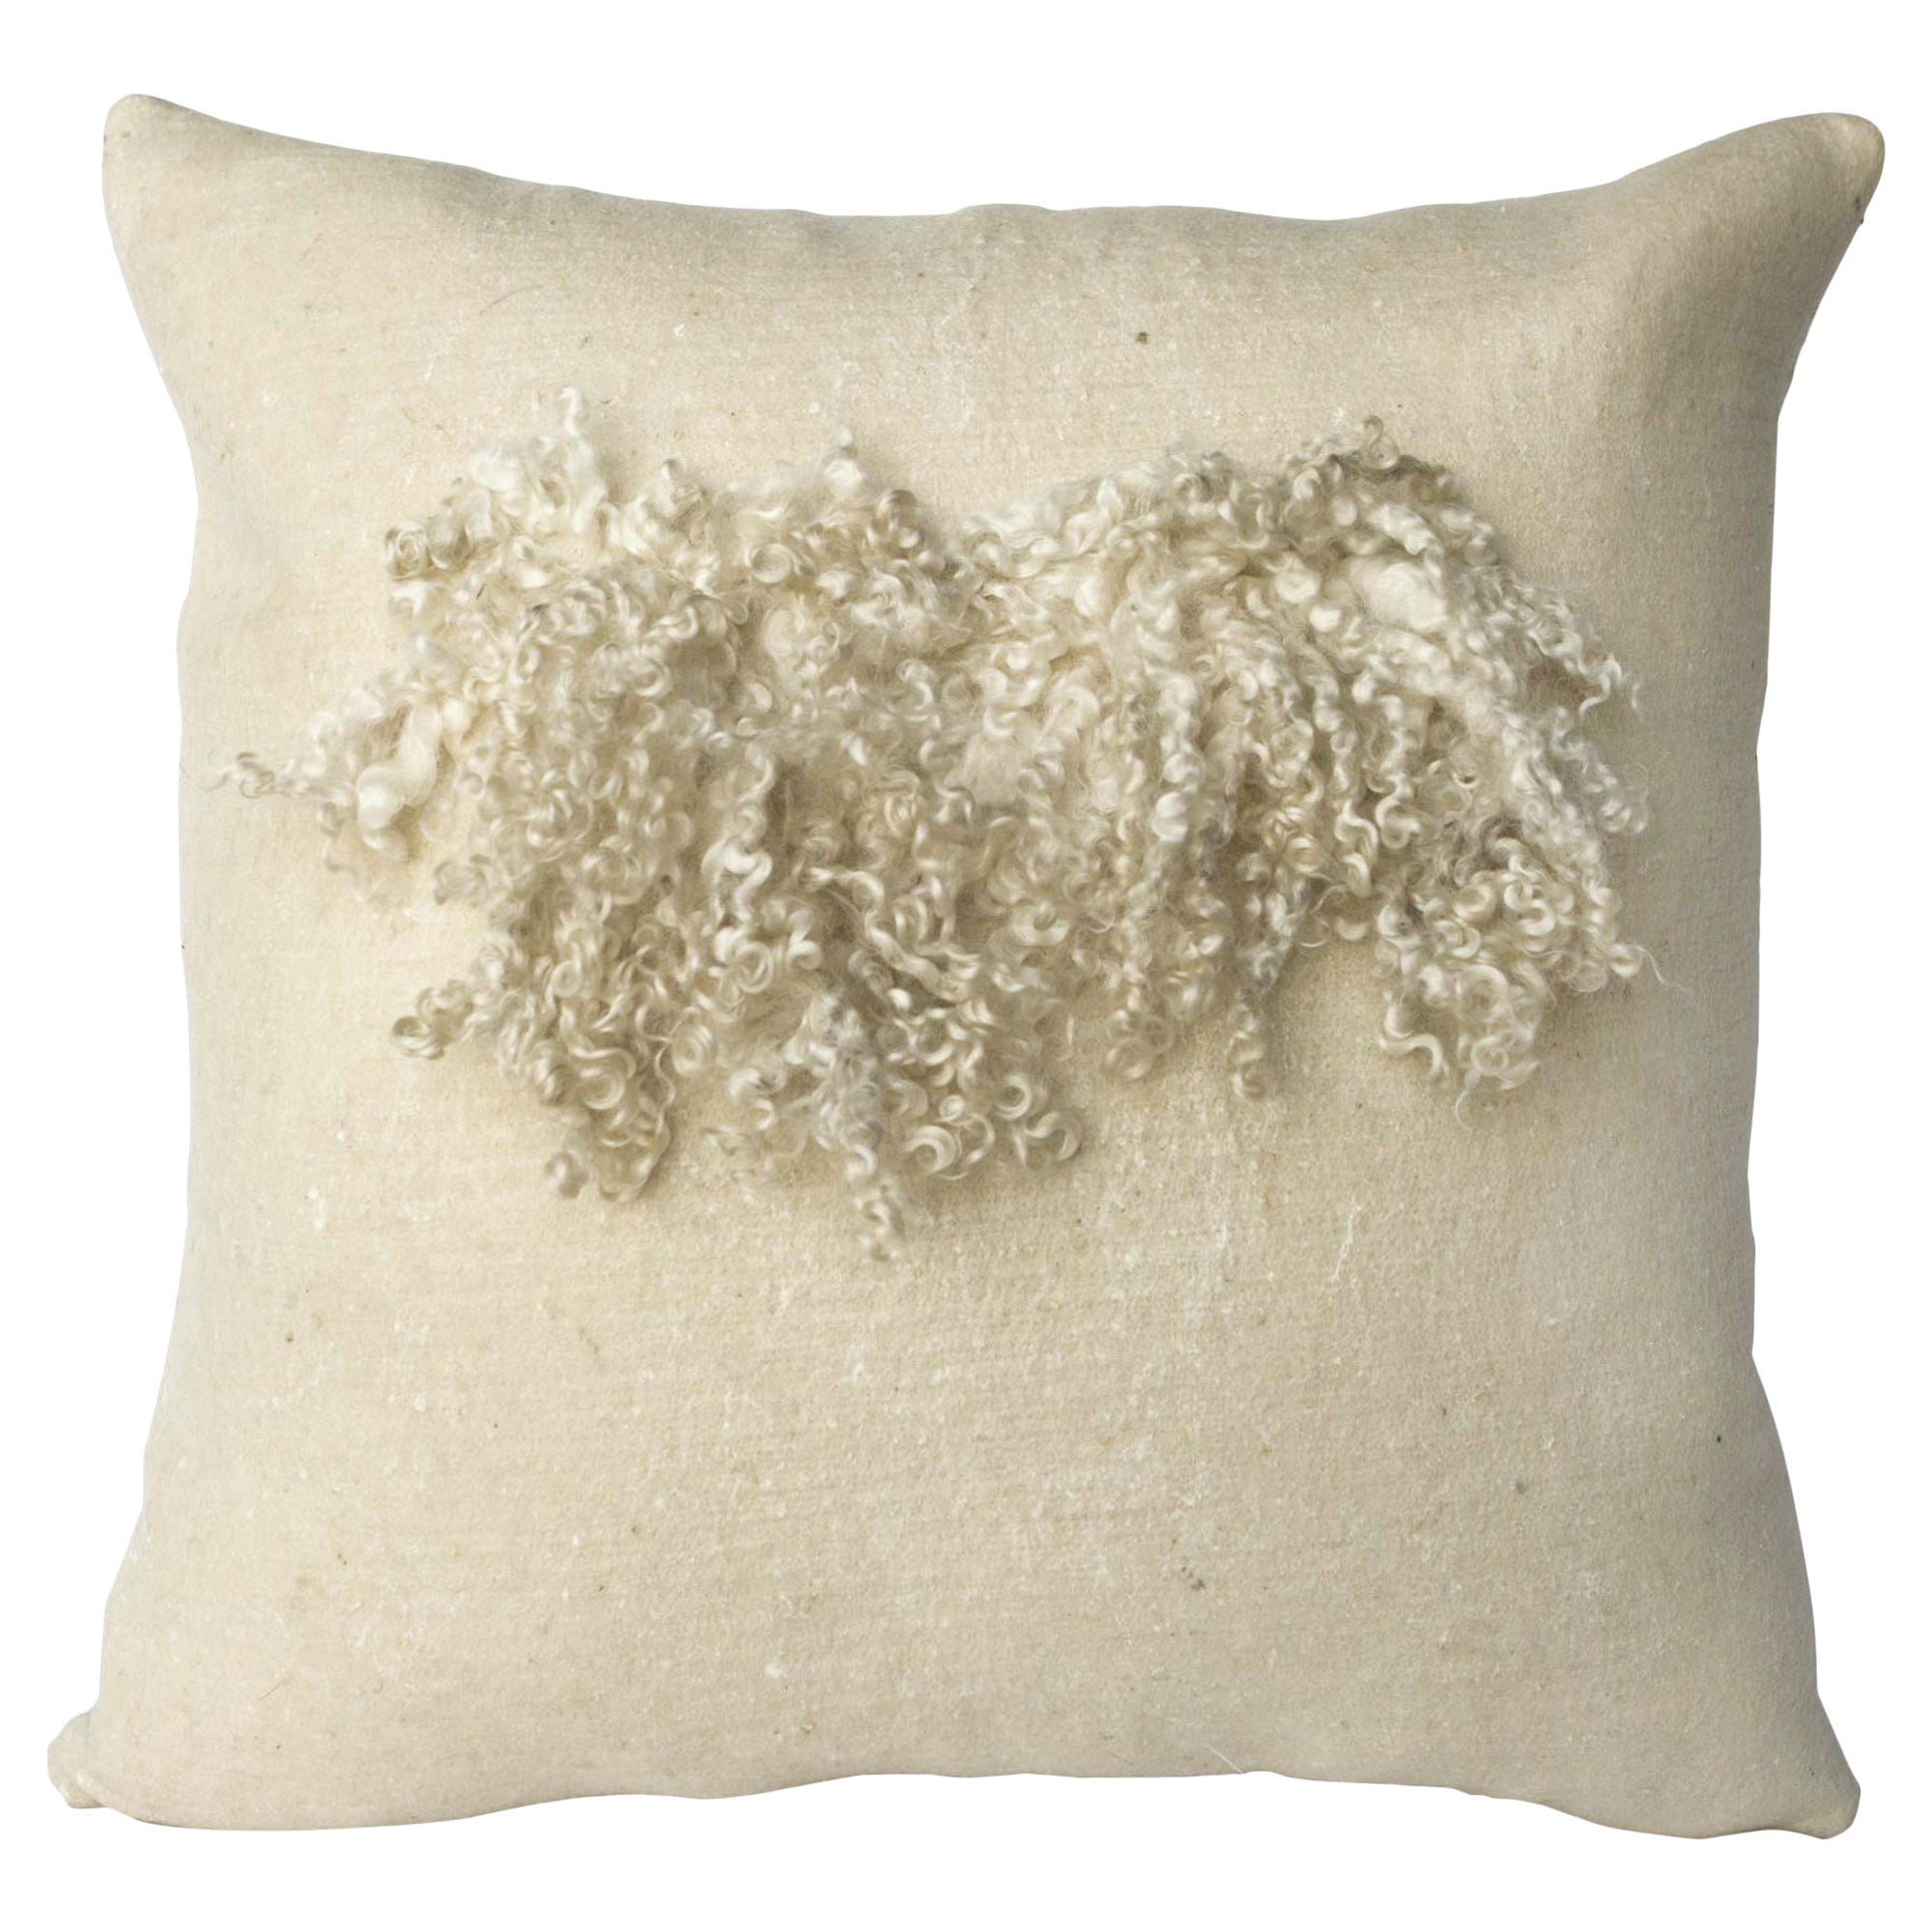 Wool and Silk Wensleydale Pillow, Heritage Sheep Collection